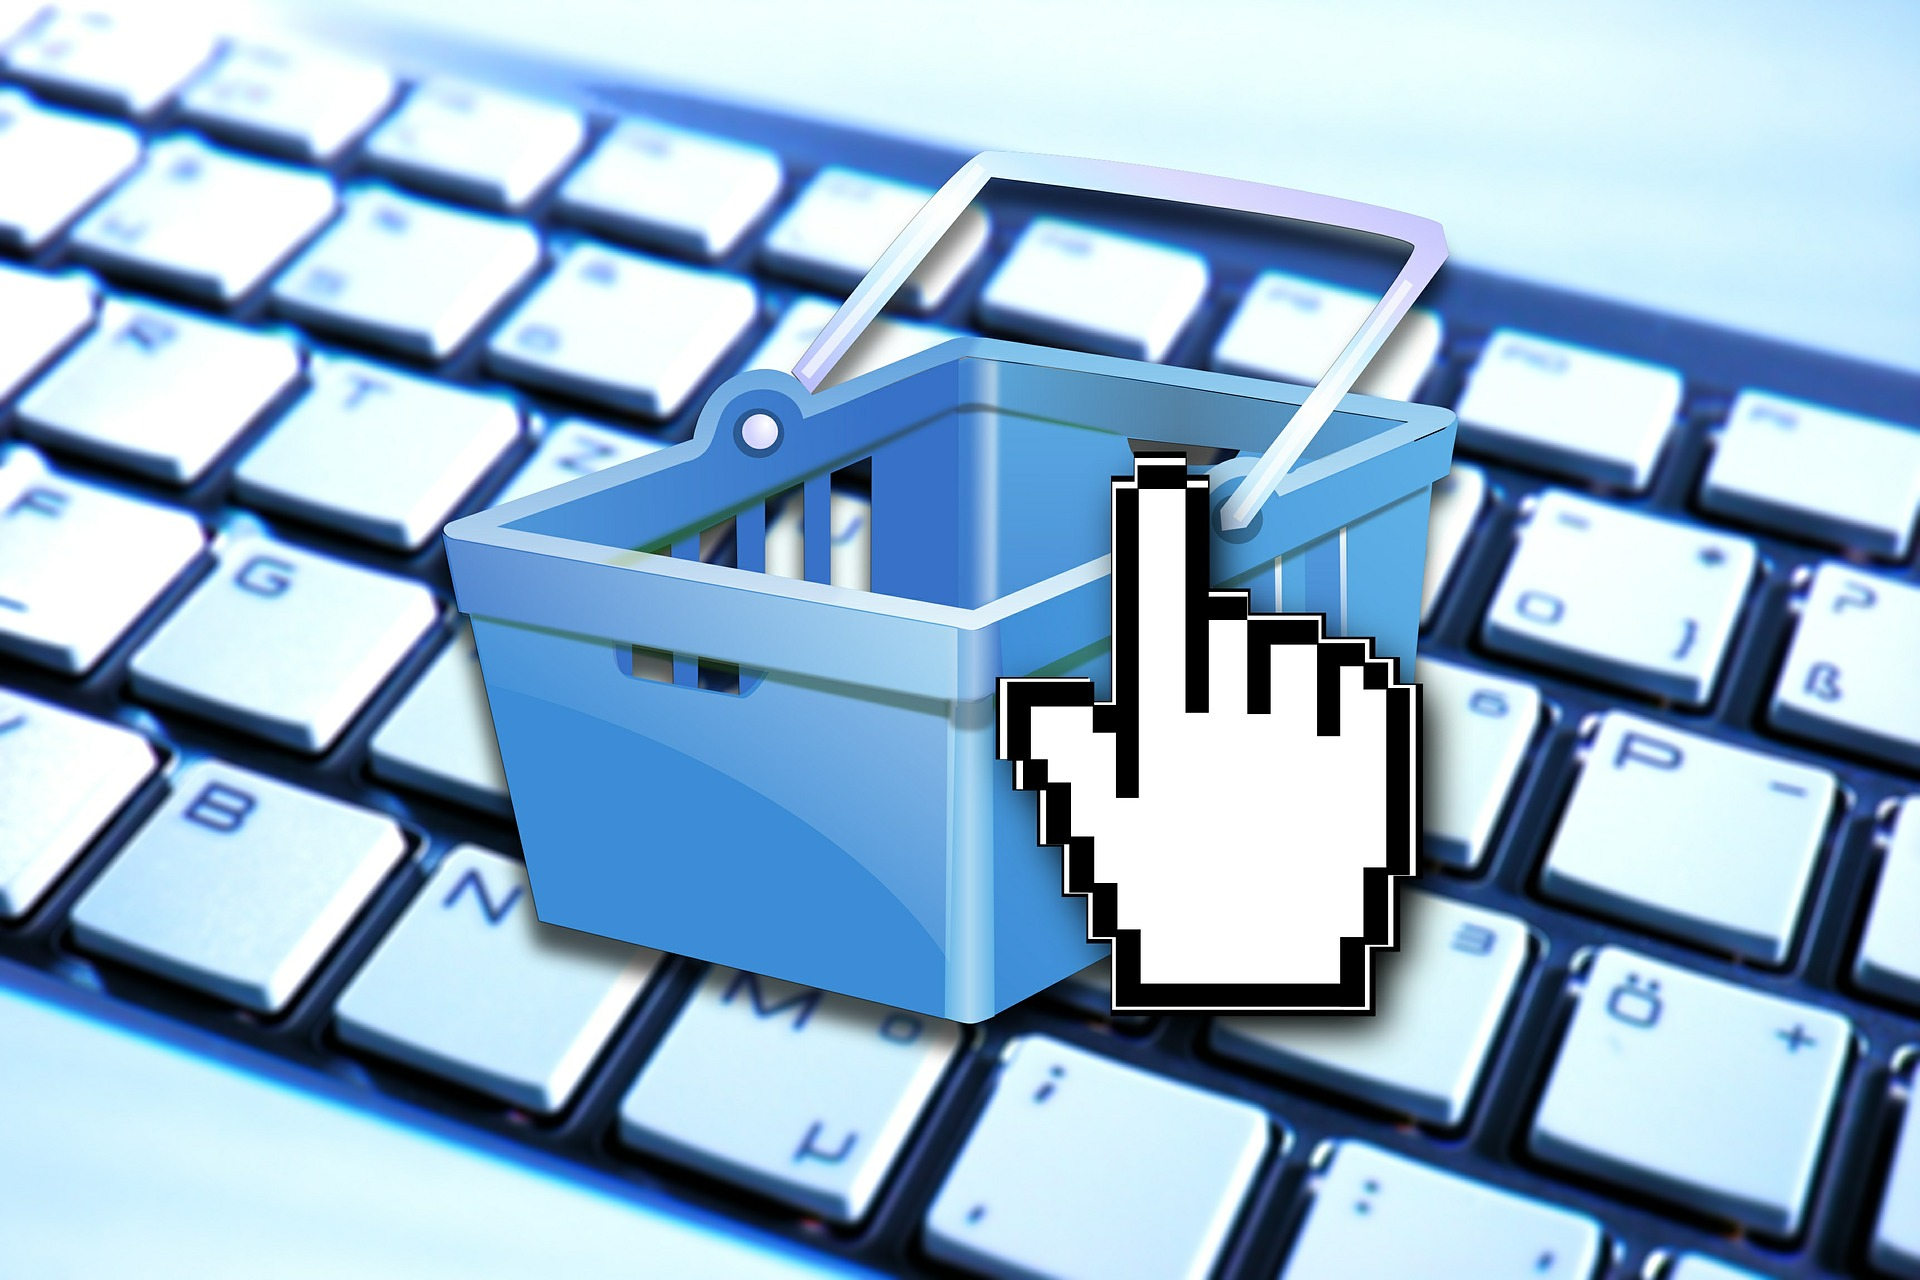 Vendas pela internet e-commerce 2019